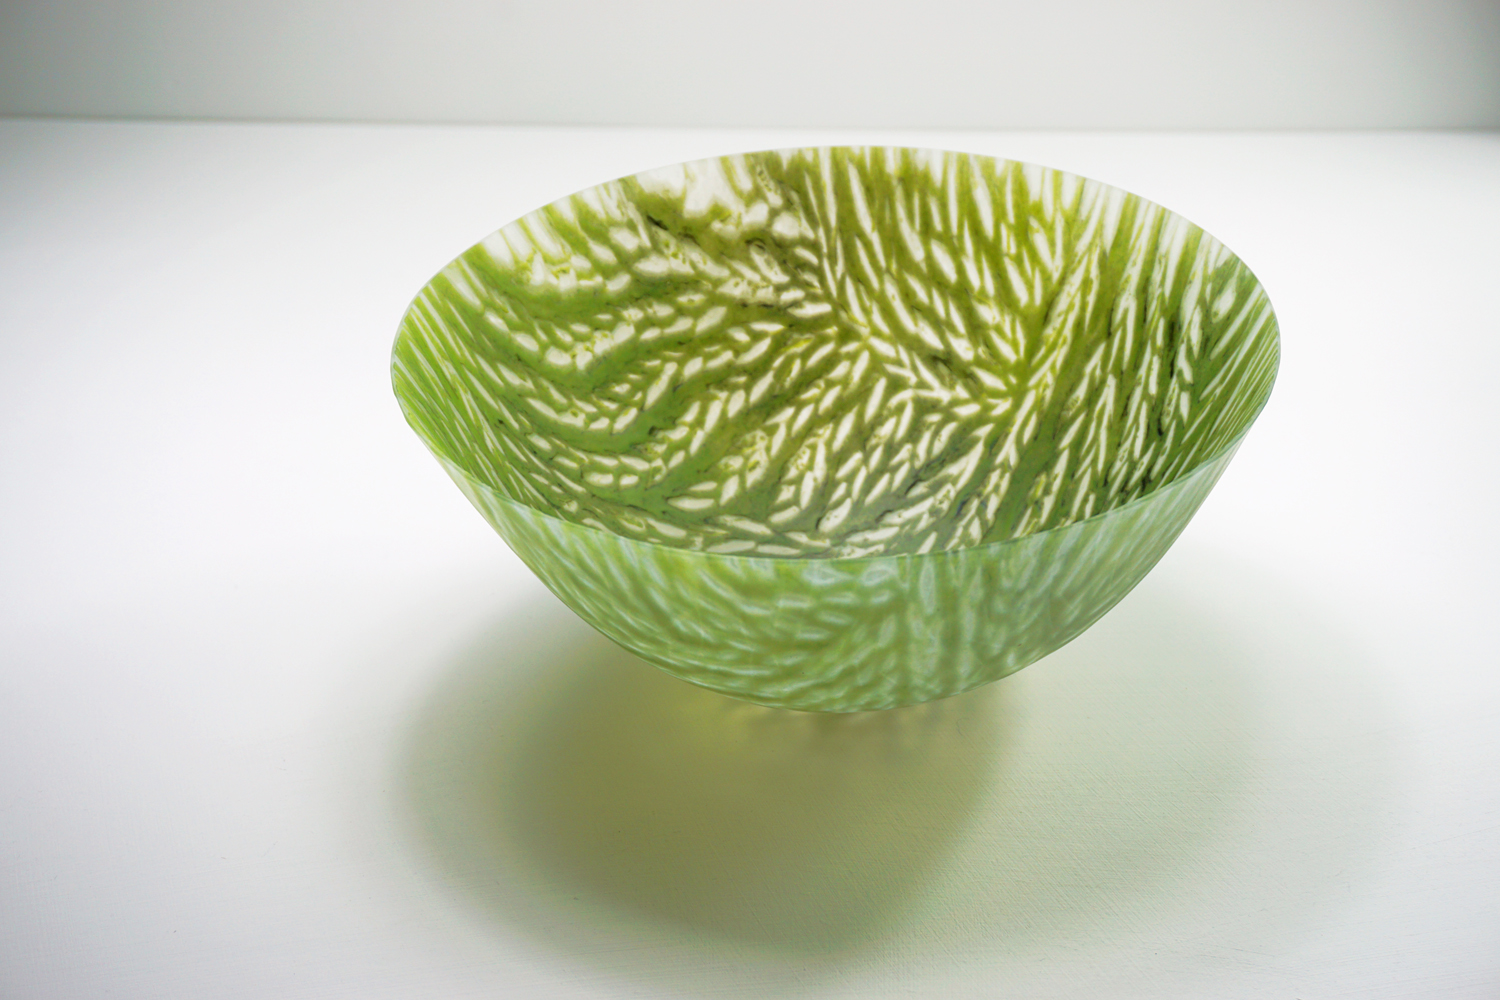 The Best of Glass Sculpture and Glasswork Art: Amanda Simmons glasswork The Best of Glass Sculpture and Glasswork Art: Amanda Simmons Amanda Simmons Acrotelm III